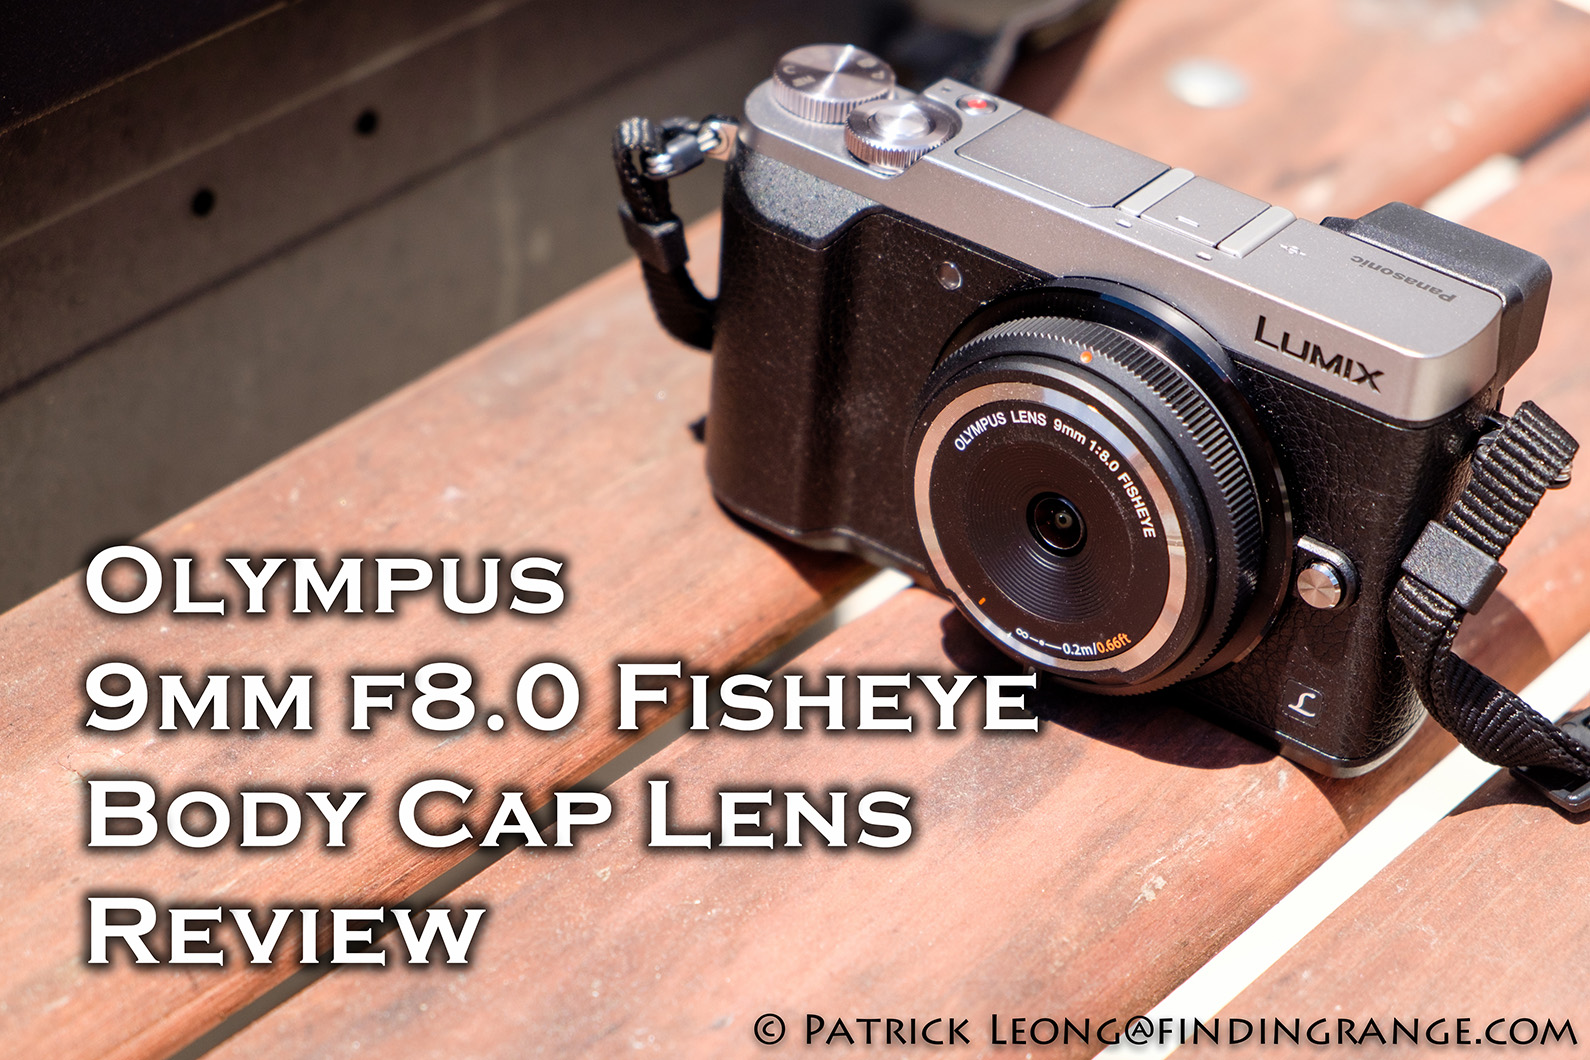 Panasonic-Lumix-GX85-Olympus-9mm-f8.0-fisheye-body-cap-lens-Review-1